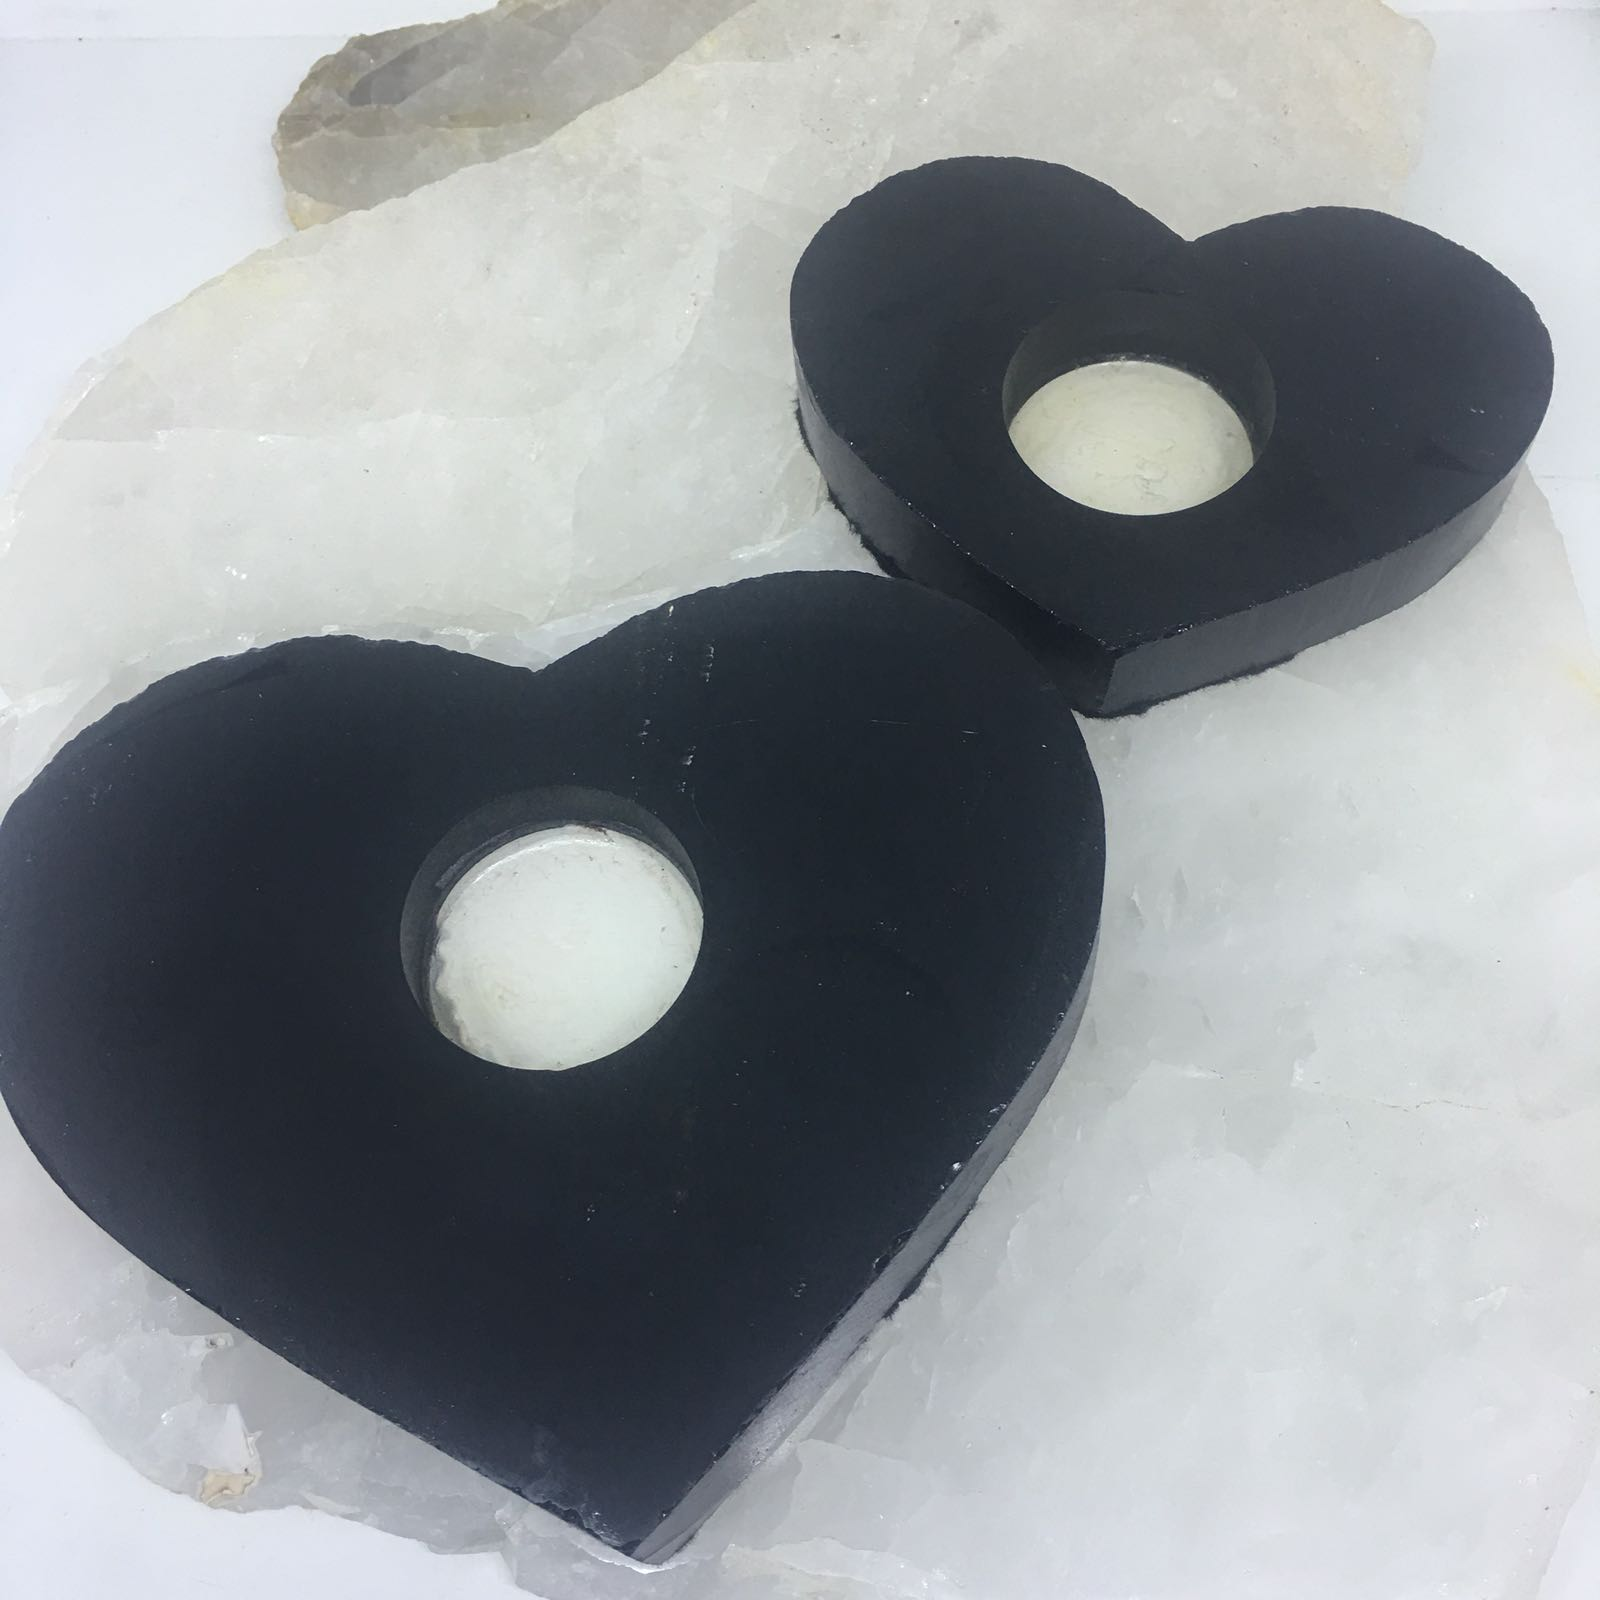 Stones from Uruguay - Black Obsdian Crystal Heart Candle Holder Tealight